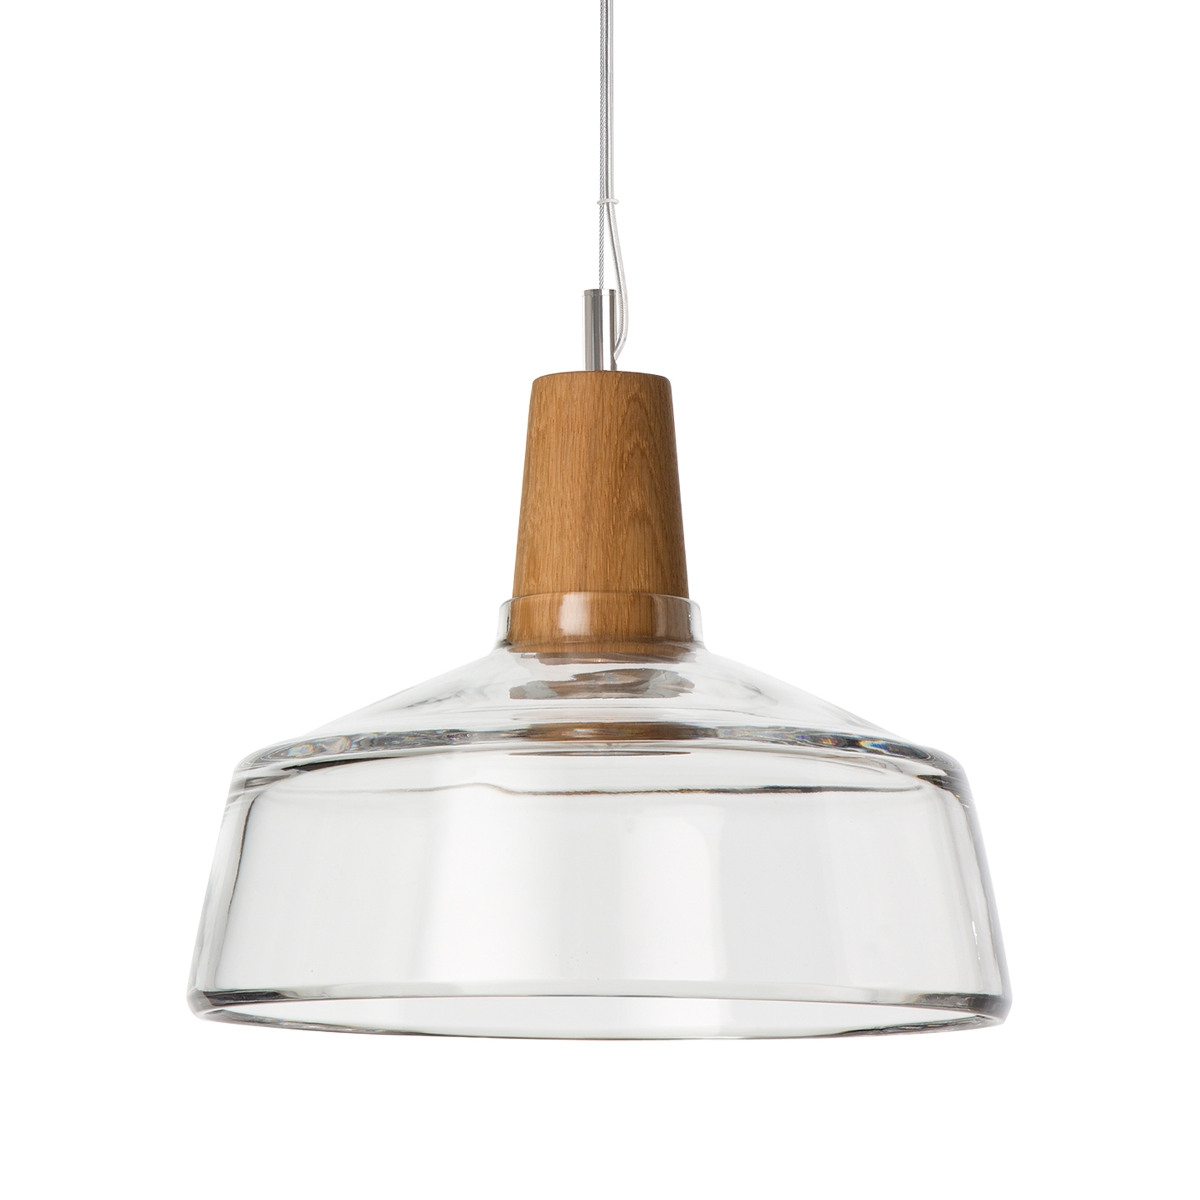 Suspension Luminaire Grand Diametre Suspension Industrielle En Bois Et En Verre Soufflé